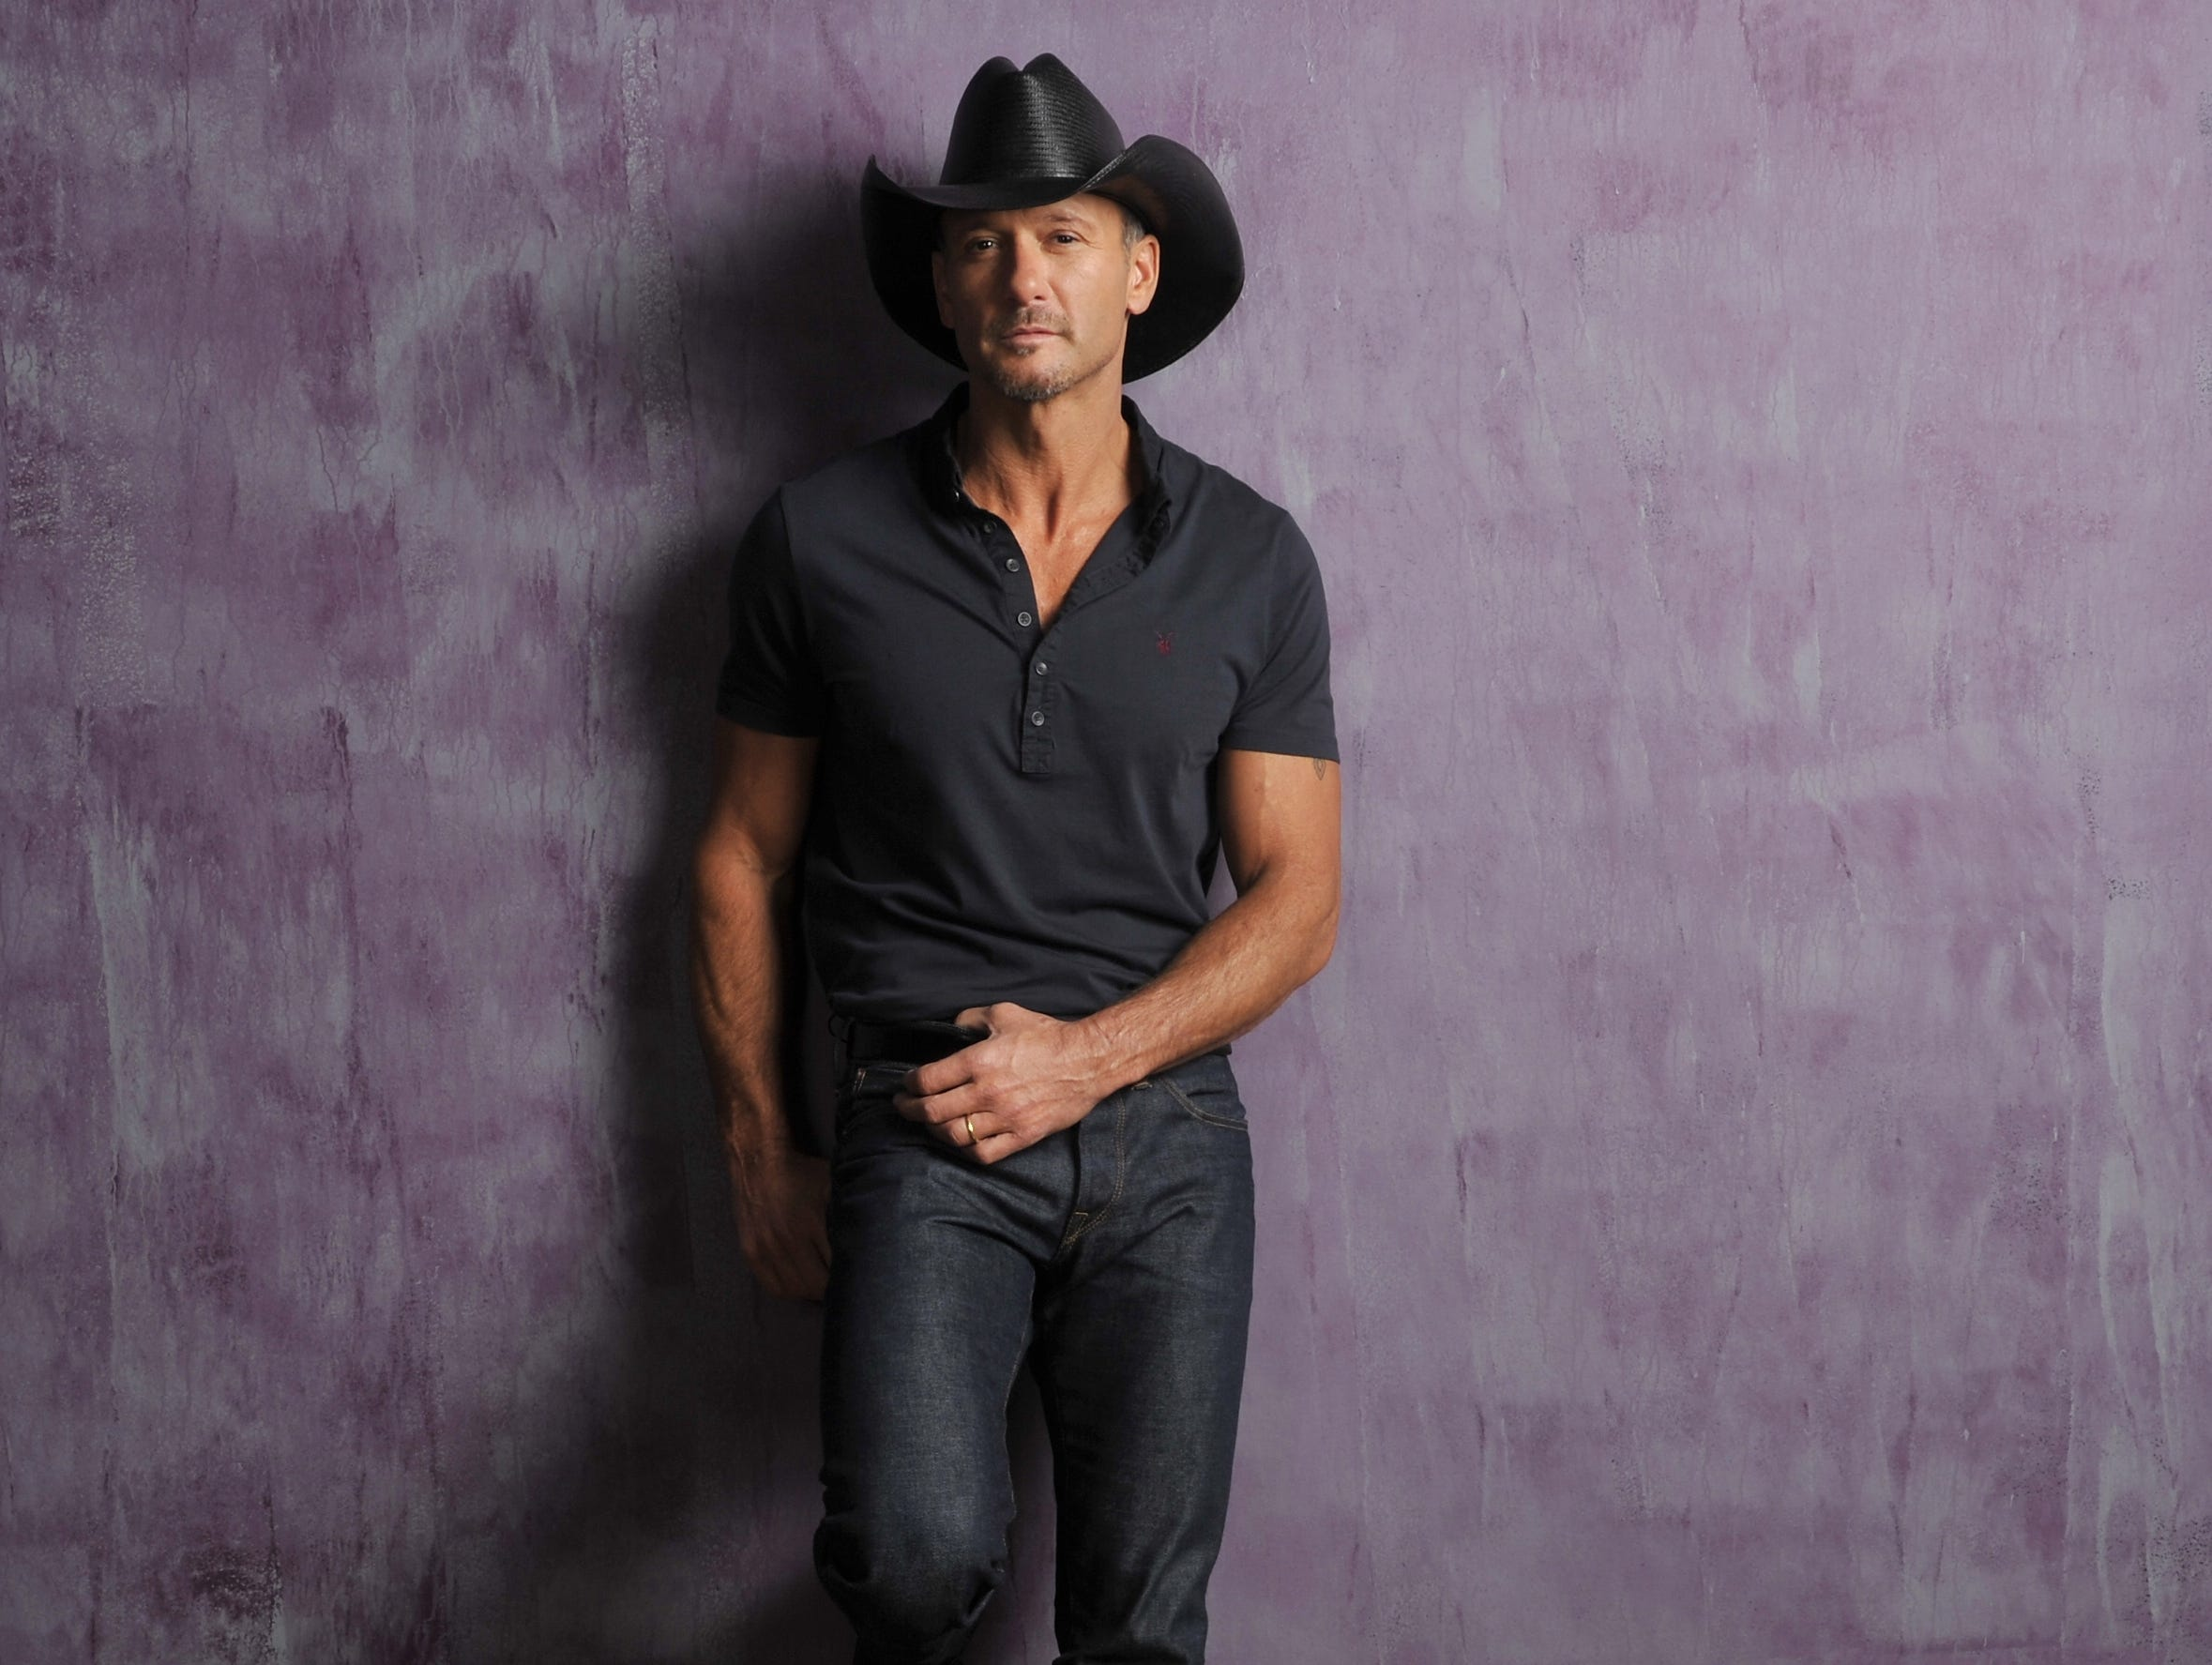 tim mcgraw humble and kind lyricstim mcgraw my little girl перевод, tim mcgraw - humble and kind, tim mcgraw my little girl, tim mcgraw скачать, tim mcgraw my best friend lyrics, tim mcgraw truck yeah перевод, tim mcgraw humble and kind lyrics, tim mcgraw my best friend, tim mcgraw instagram, tim mcgraw - truck yeah, tim mcgraw don't take the girl, tim mcgraw and faith hill wiki, tim mcgraw truck, tim mcgraw humble, tim mcgraw love story, tim mcgraw truck yeah lyrics, tim mcgraw lyrics swift, tim mcgraw -, tim mcgraw me and tennessee, tim mcgraw wiki